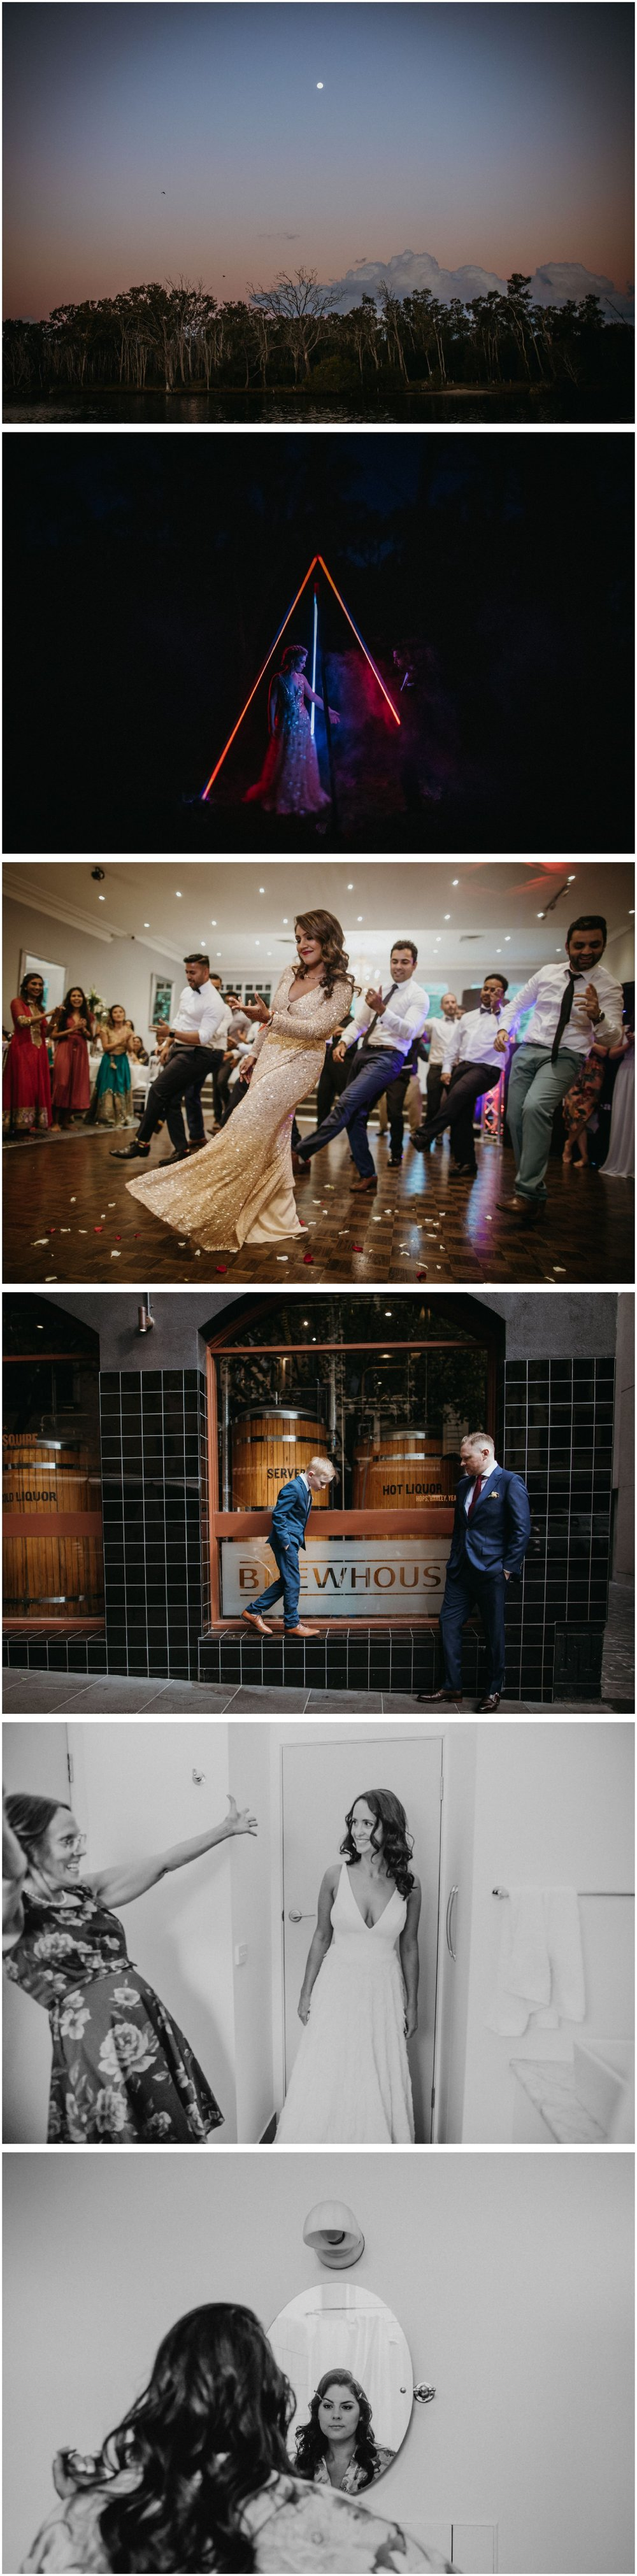 Melbourne Wedding Photographer - 2018 in review -185A0809.jpg